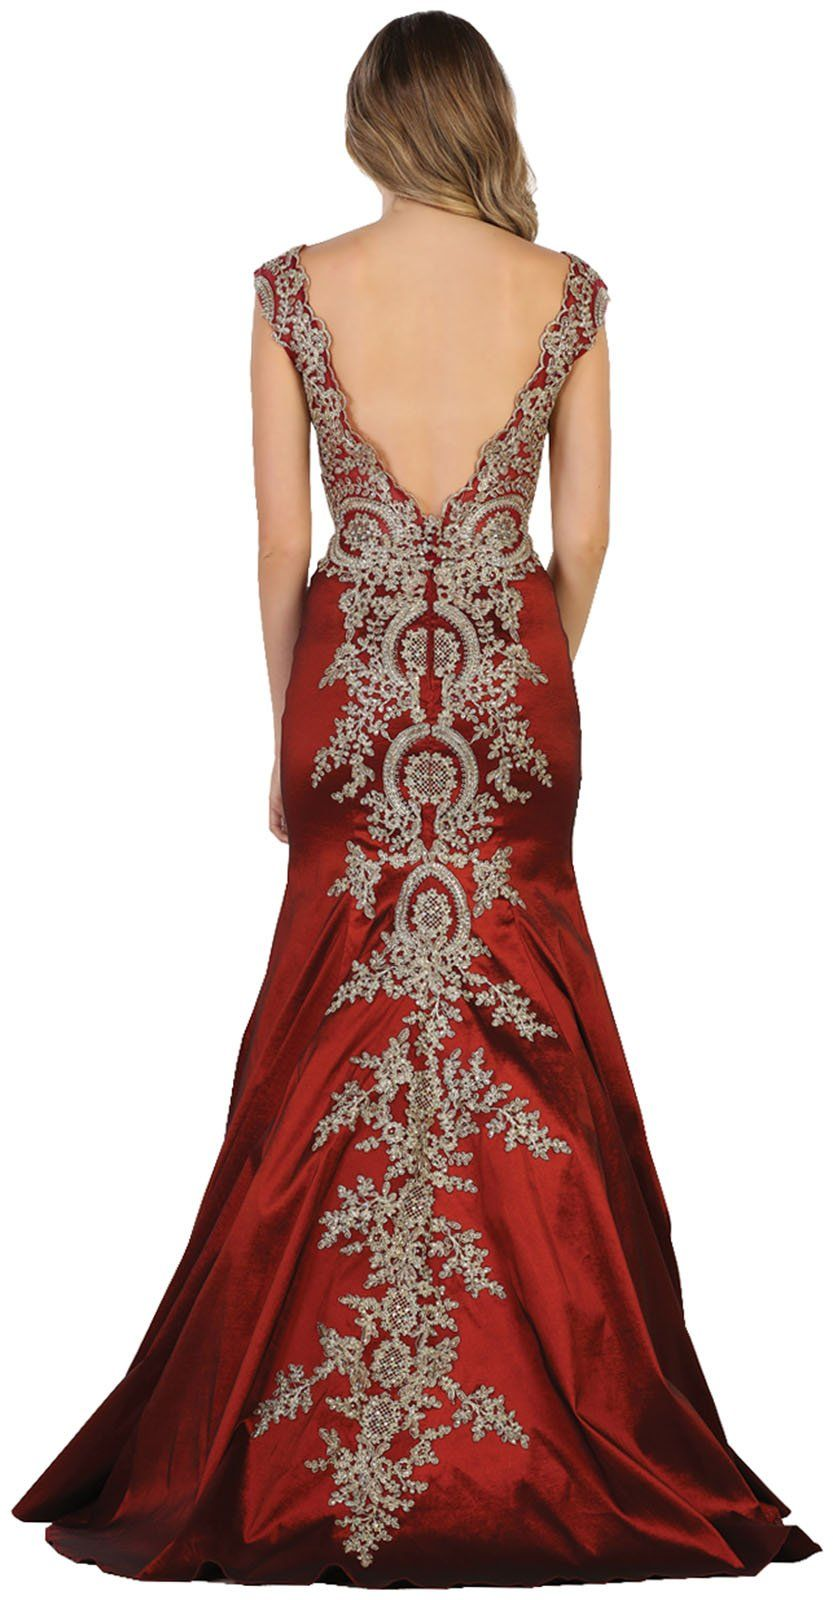 Formal dress shops inc by royal queen rq red carpet mermaid gown